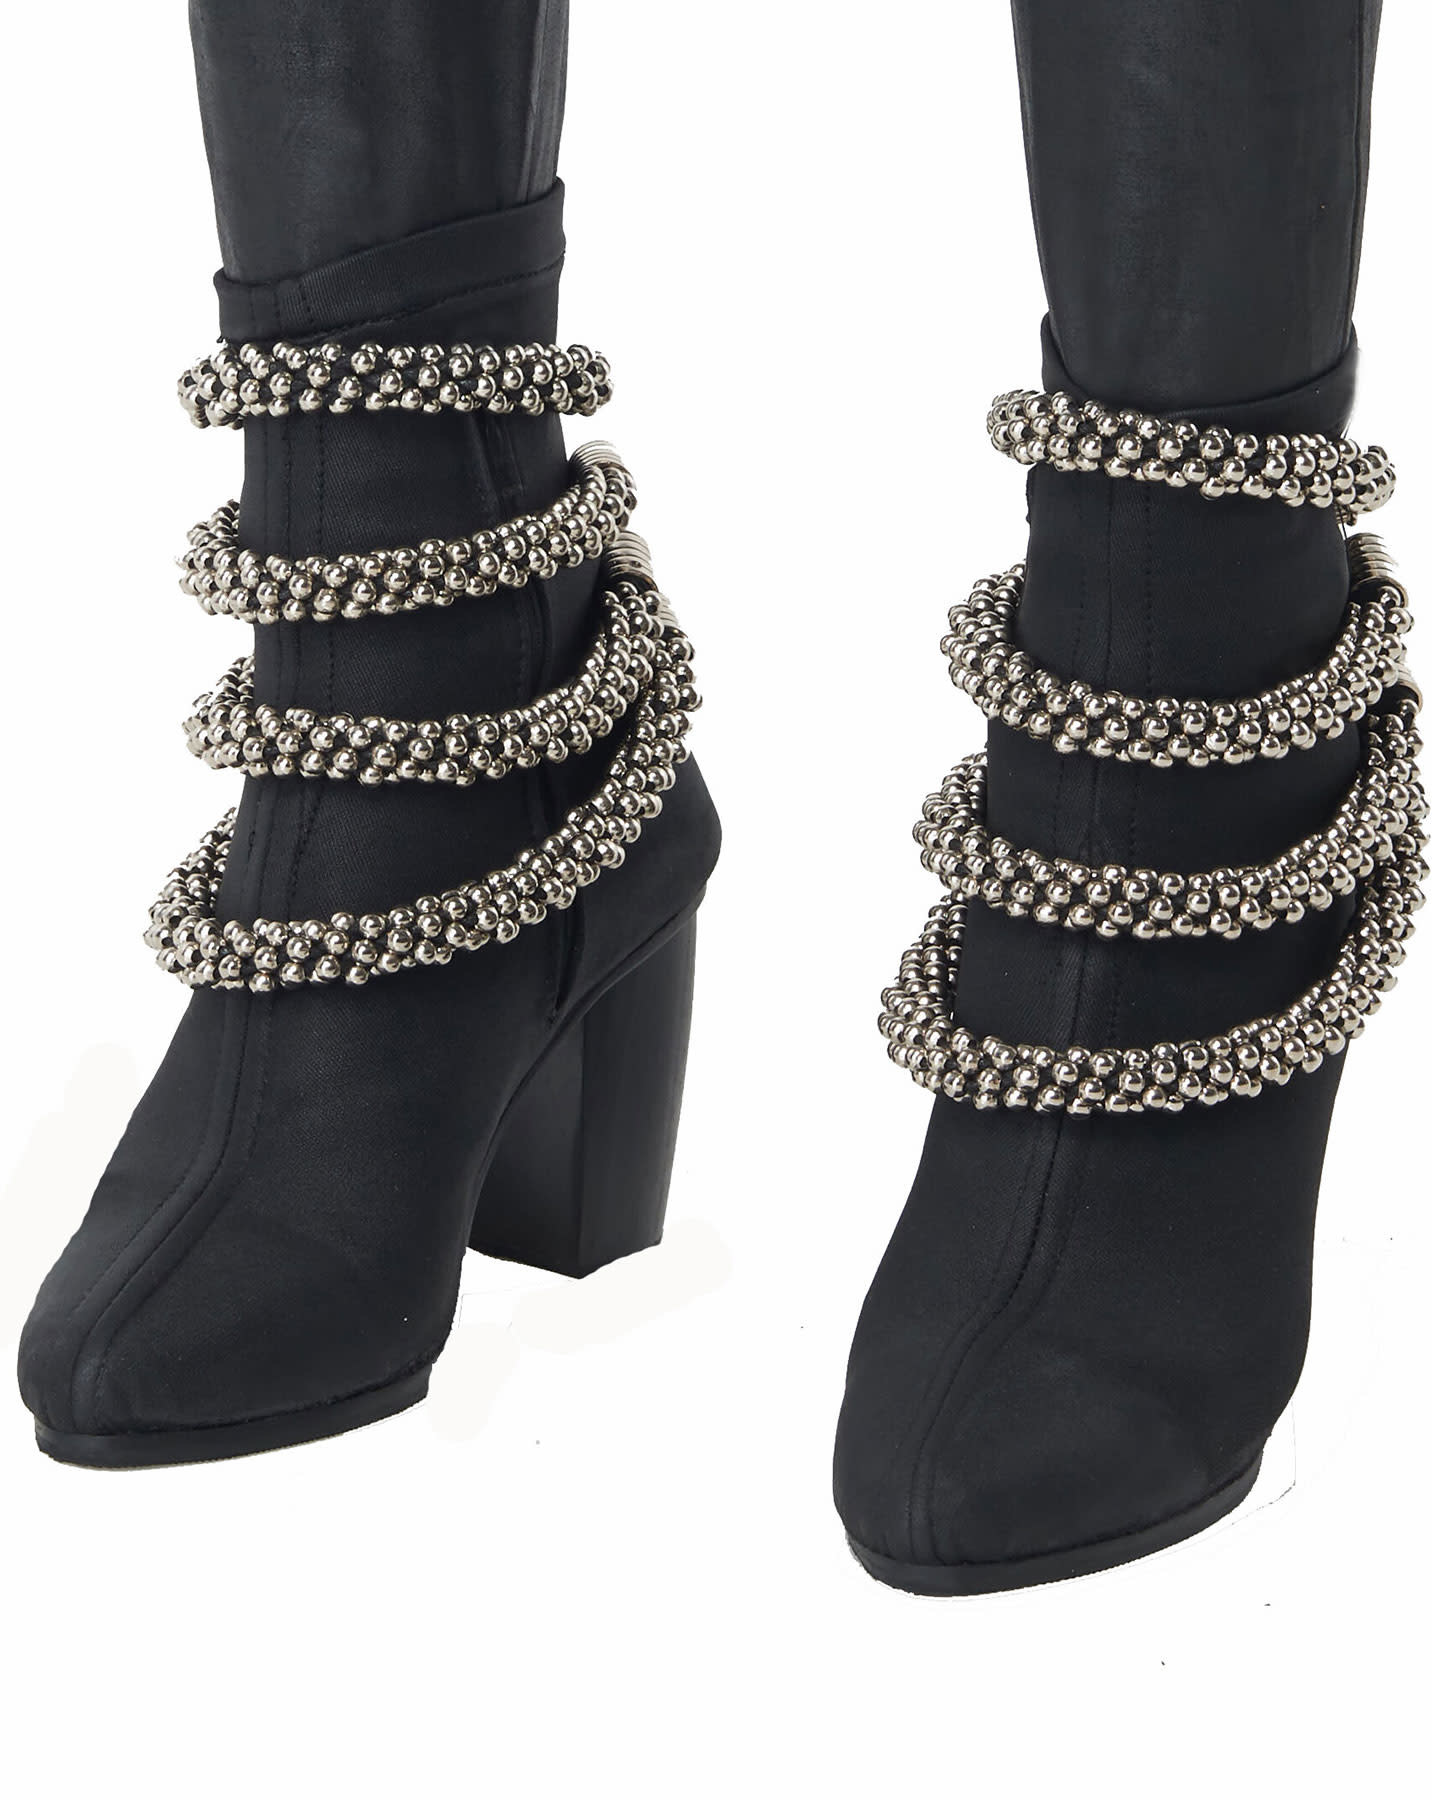 ELOUAI ANKLE CUFF - SINGLE